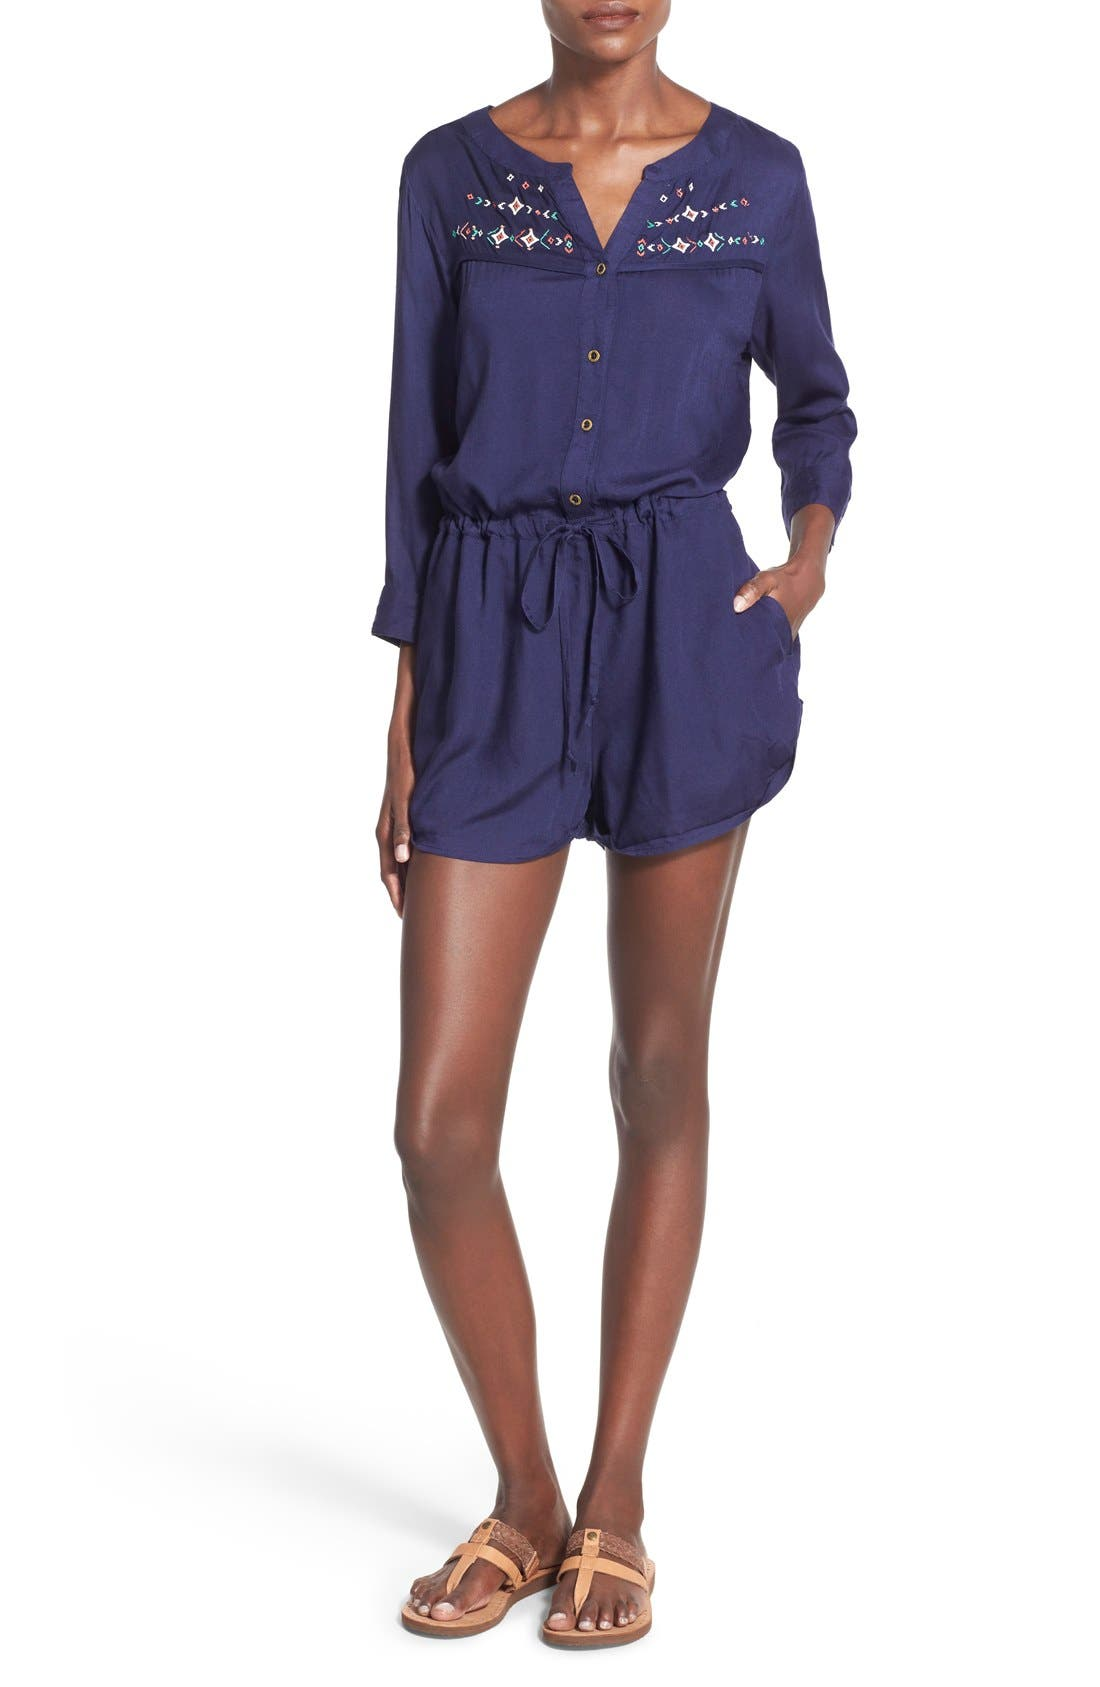 Main Image - Roxy 'Tightrope' Embroidered Romper